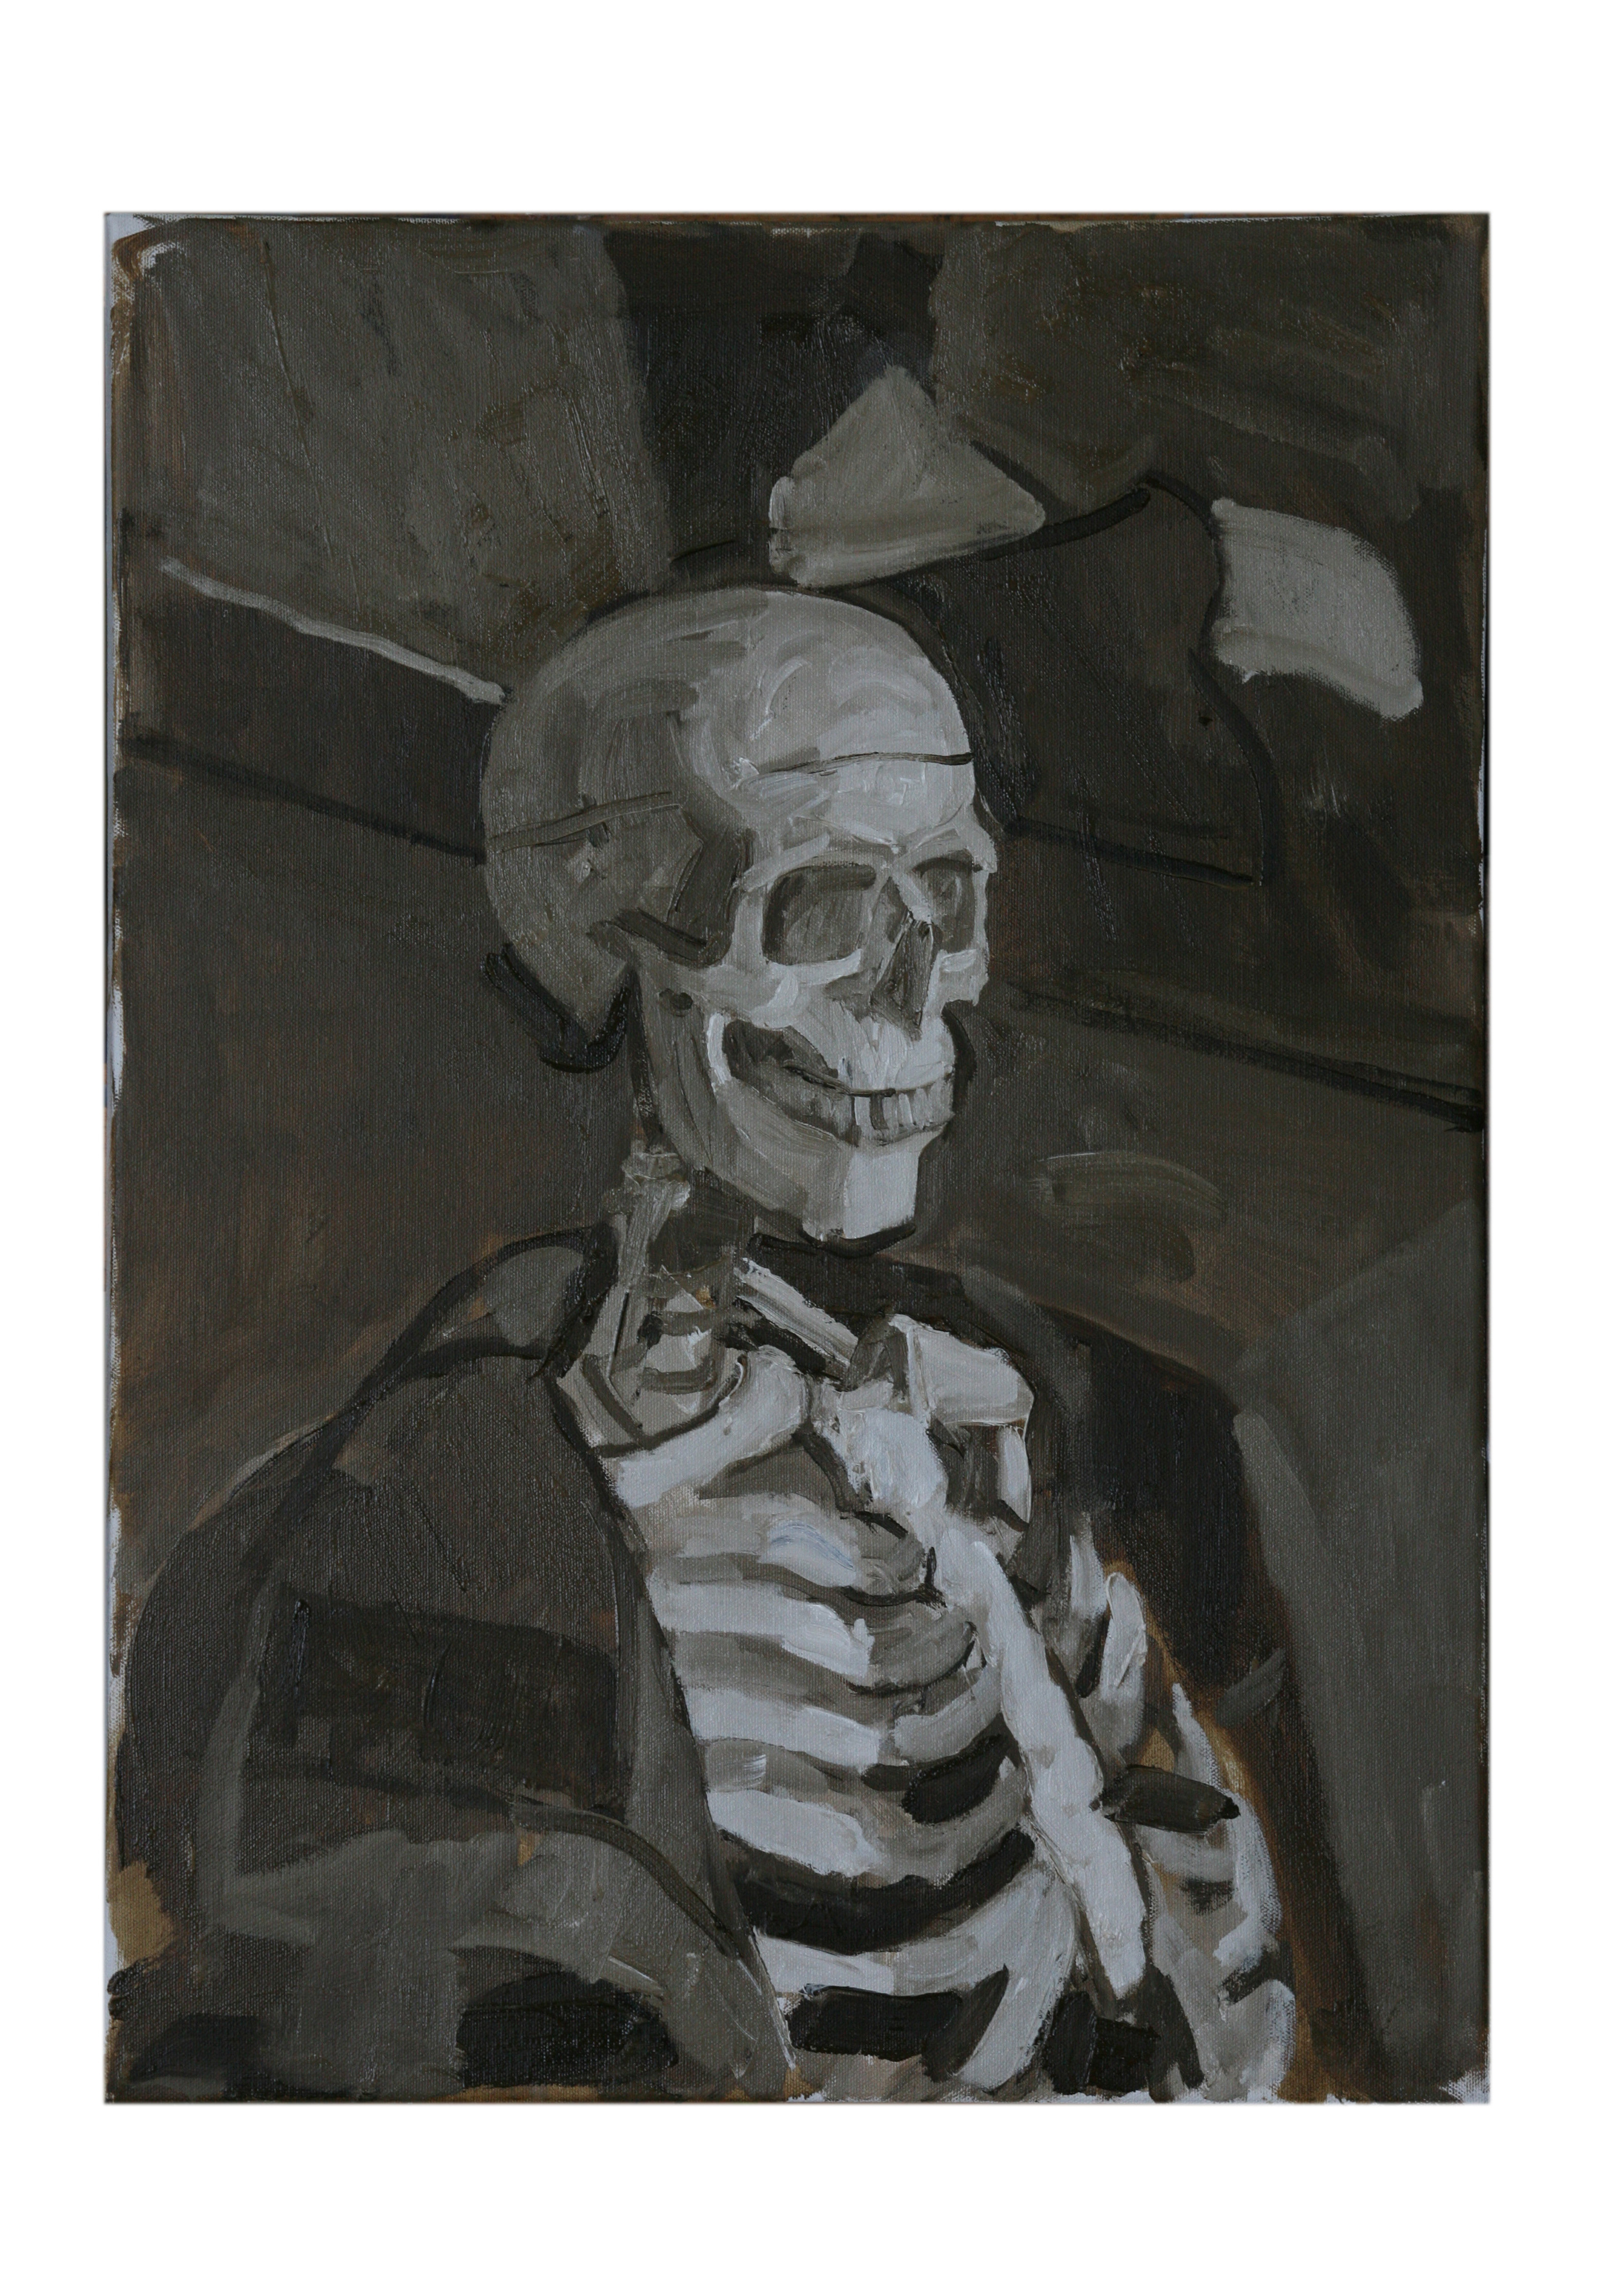 Oil on Canvas. Skeleton In the Studio 2